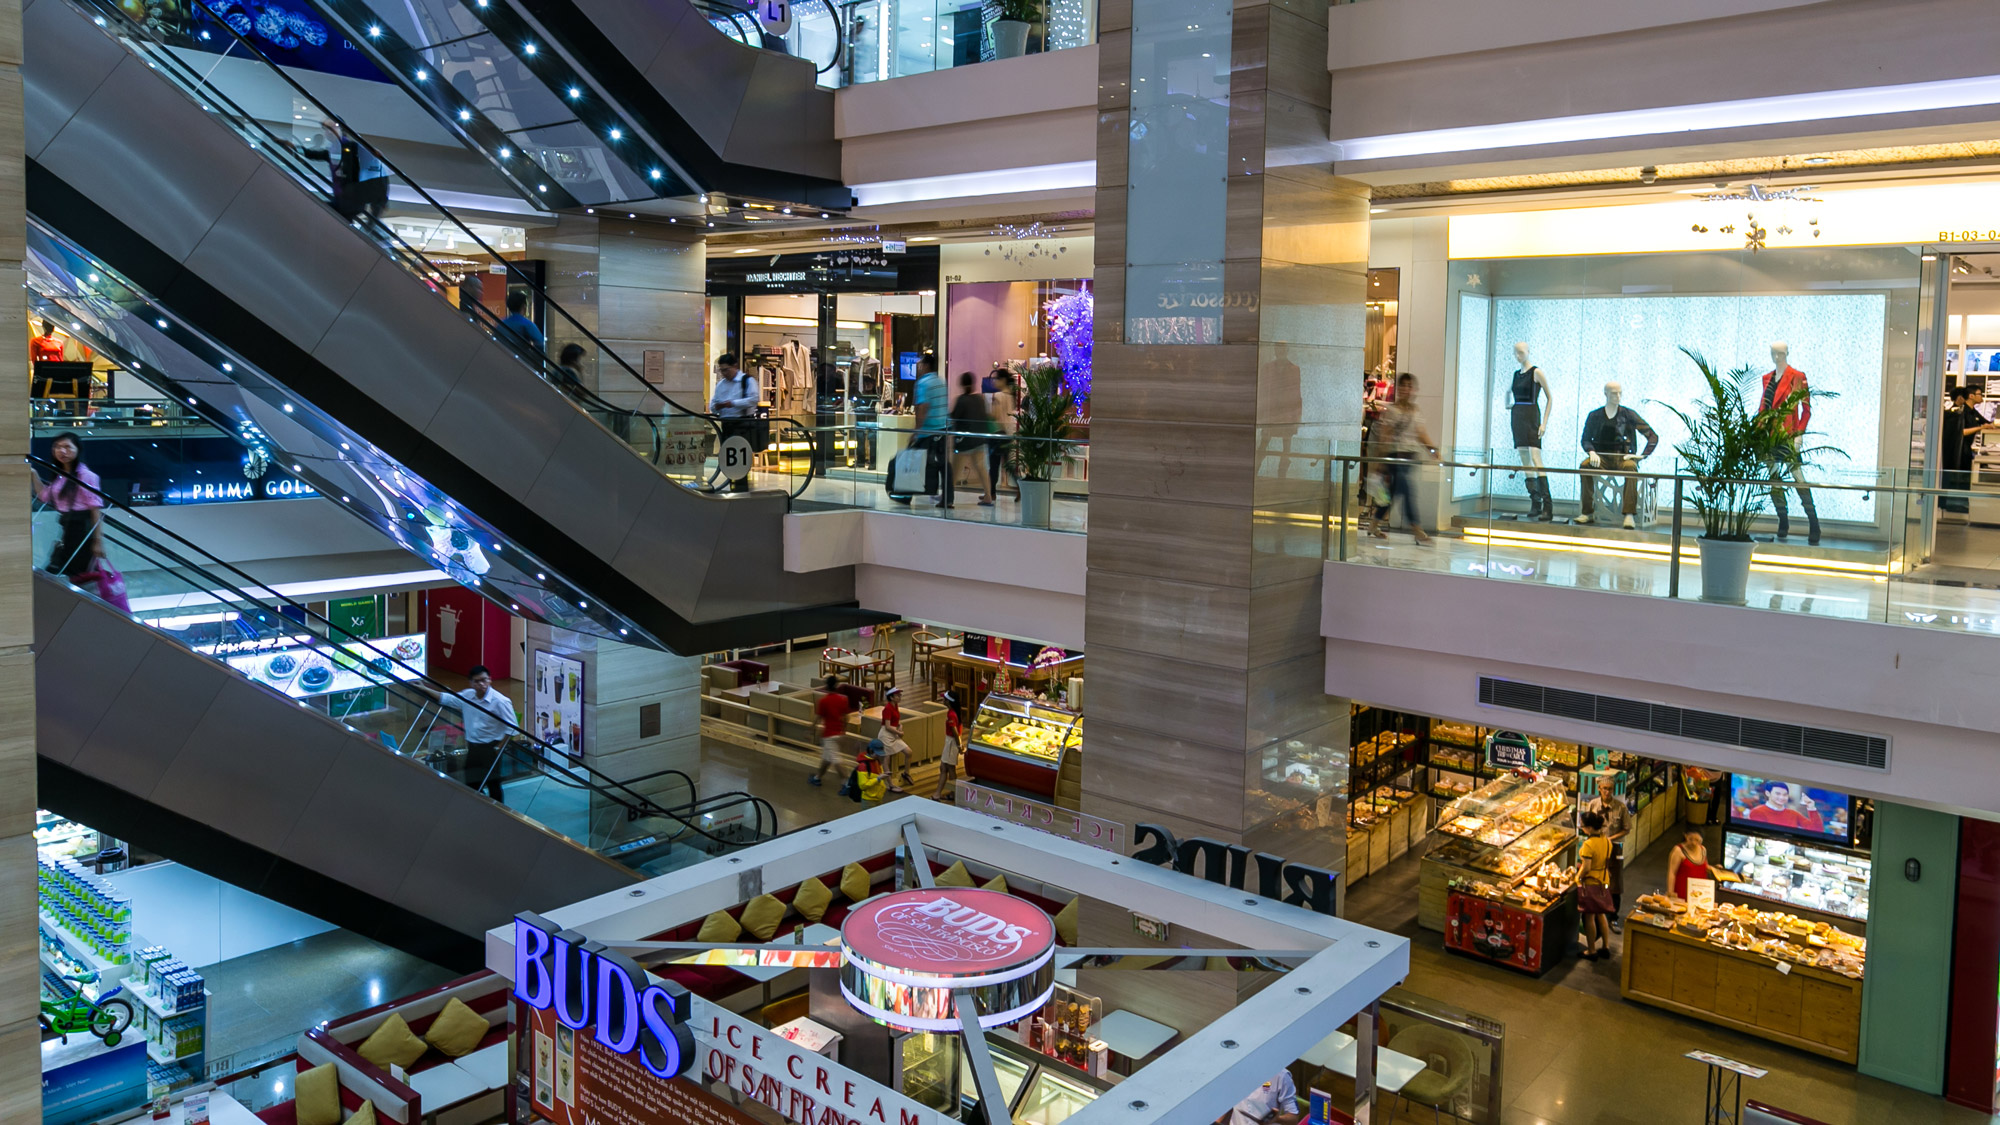 View mall hours, location and directions, contact information and learn about its many services and conveniences, including a mall concierge, readily accessible transportation, group offerings, as well as reward programs for designer women's, men's, and kids' clothing, accessories and more.